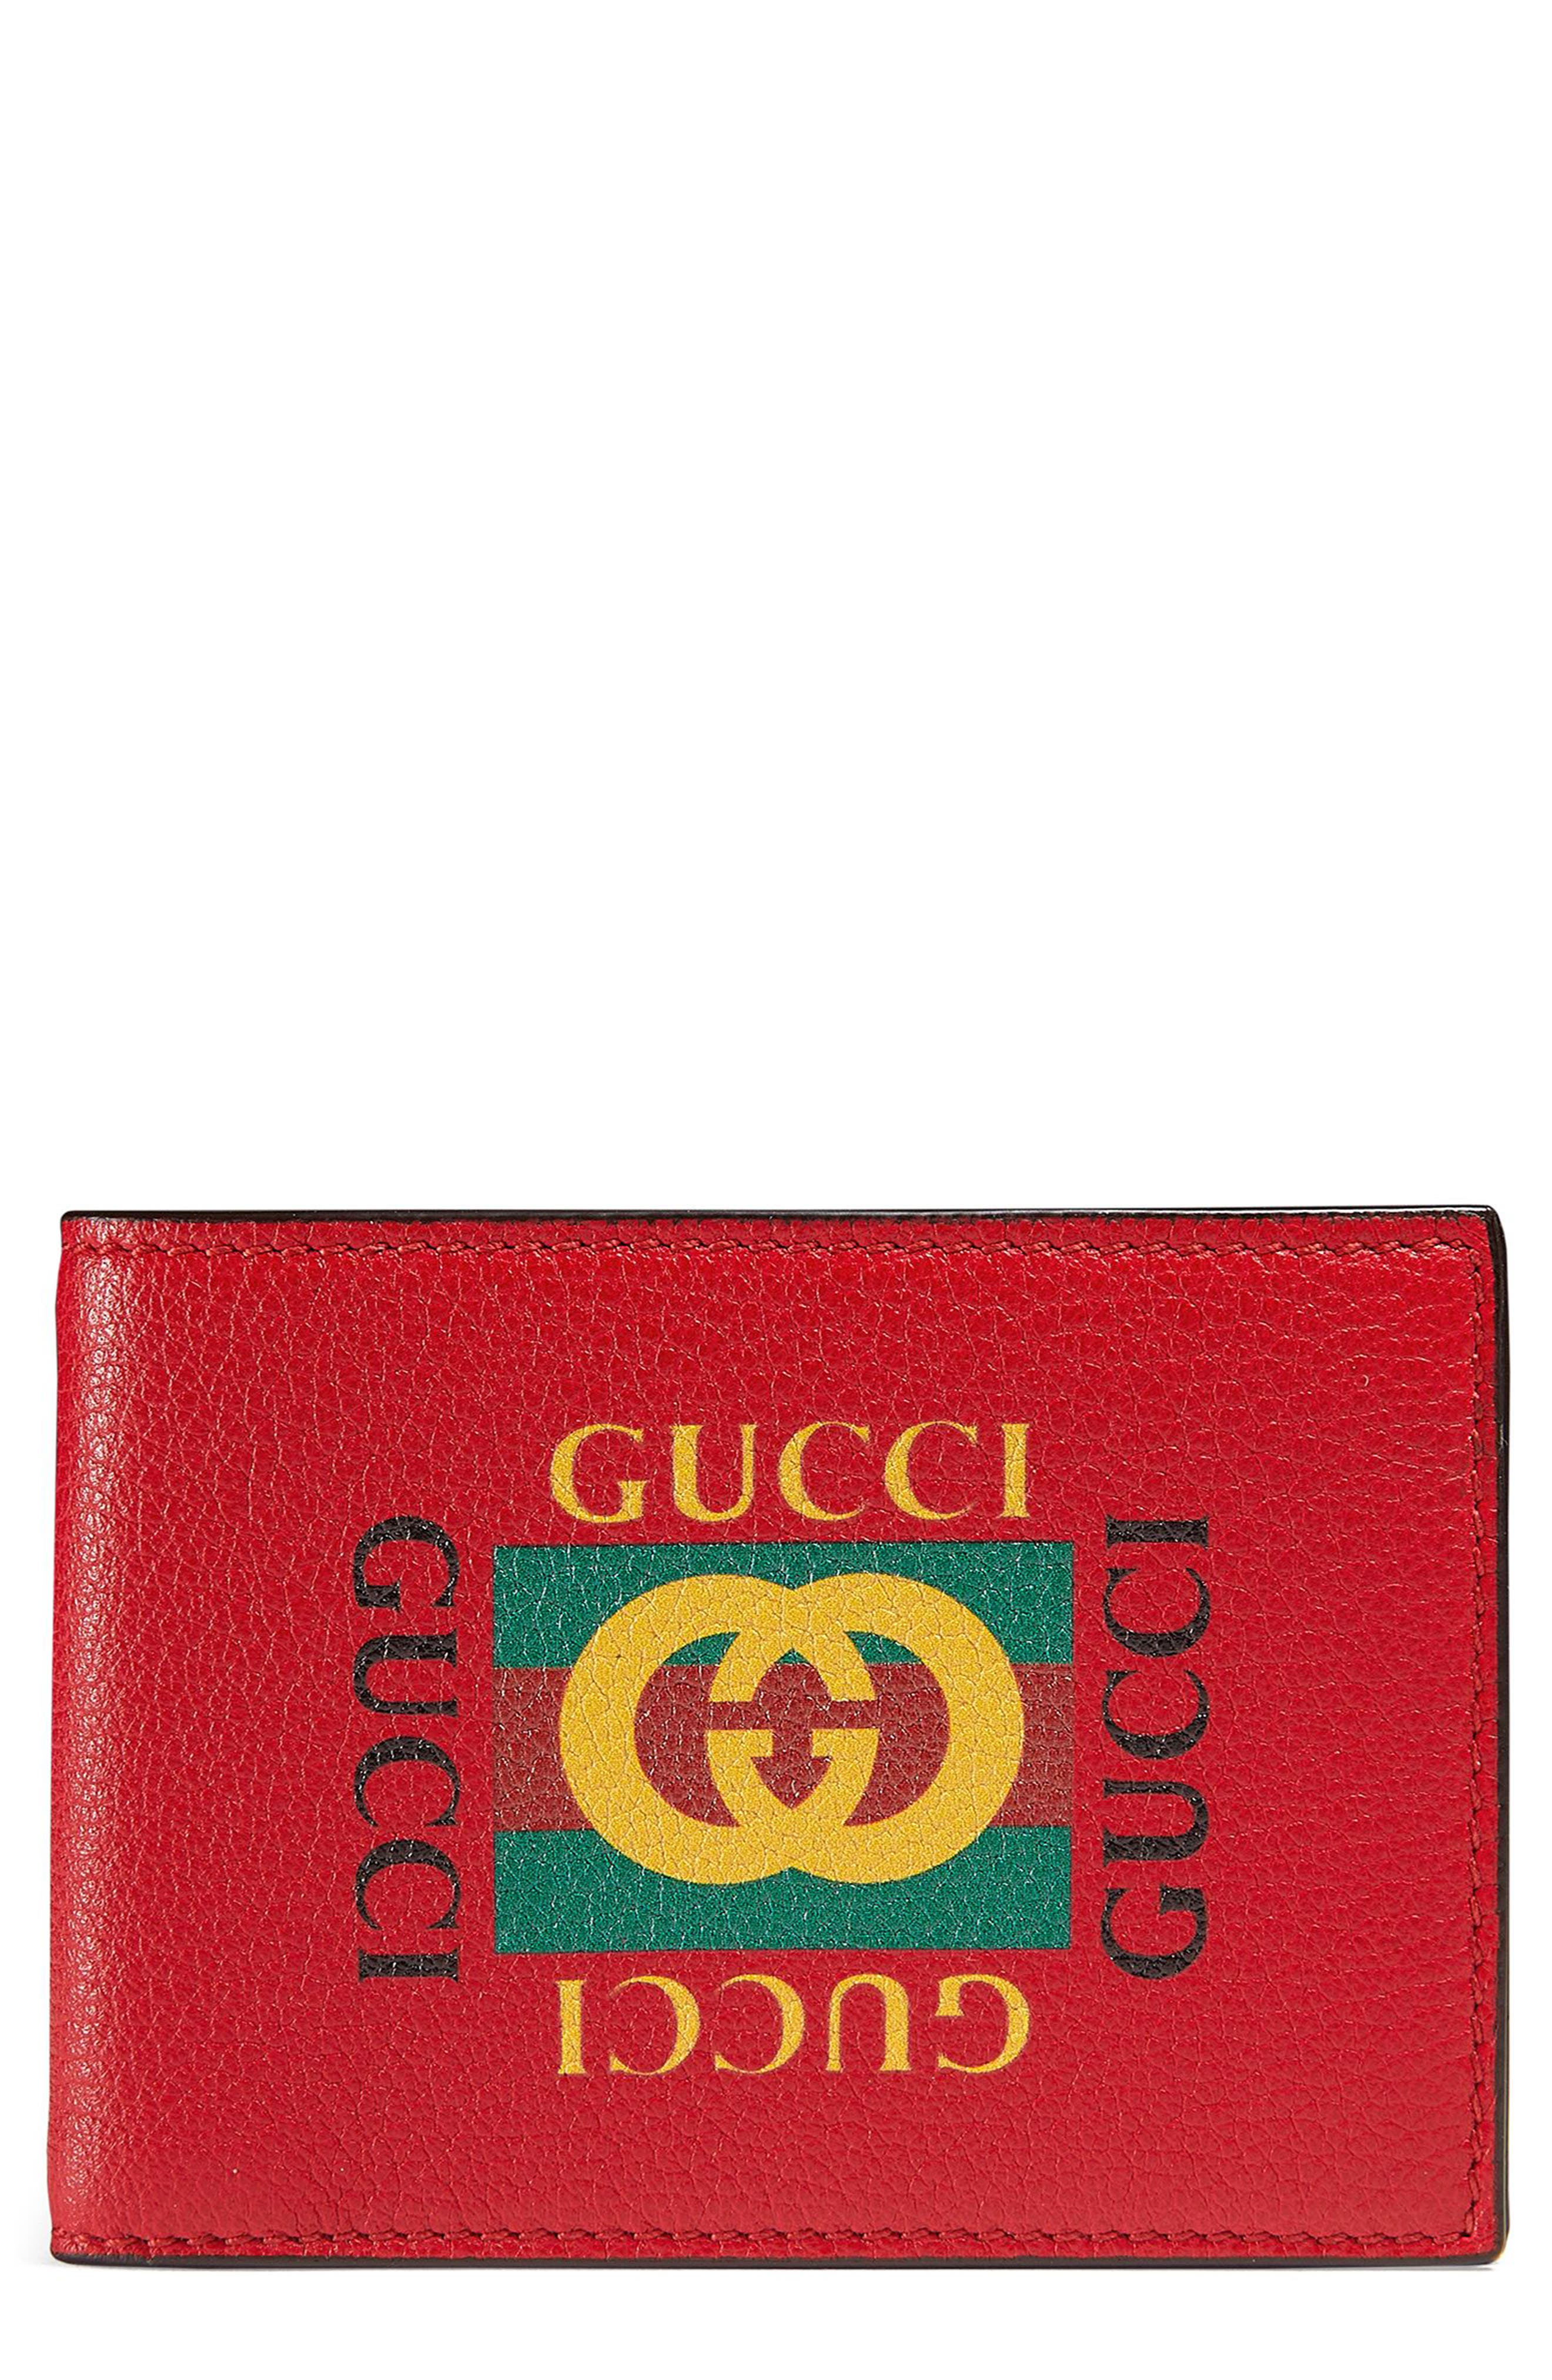 Wallet,                         Main,                         color, Red